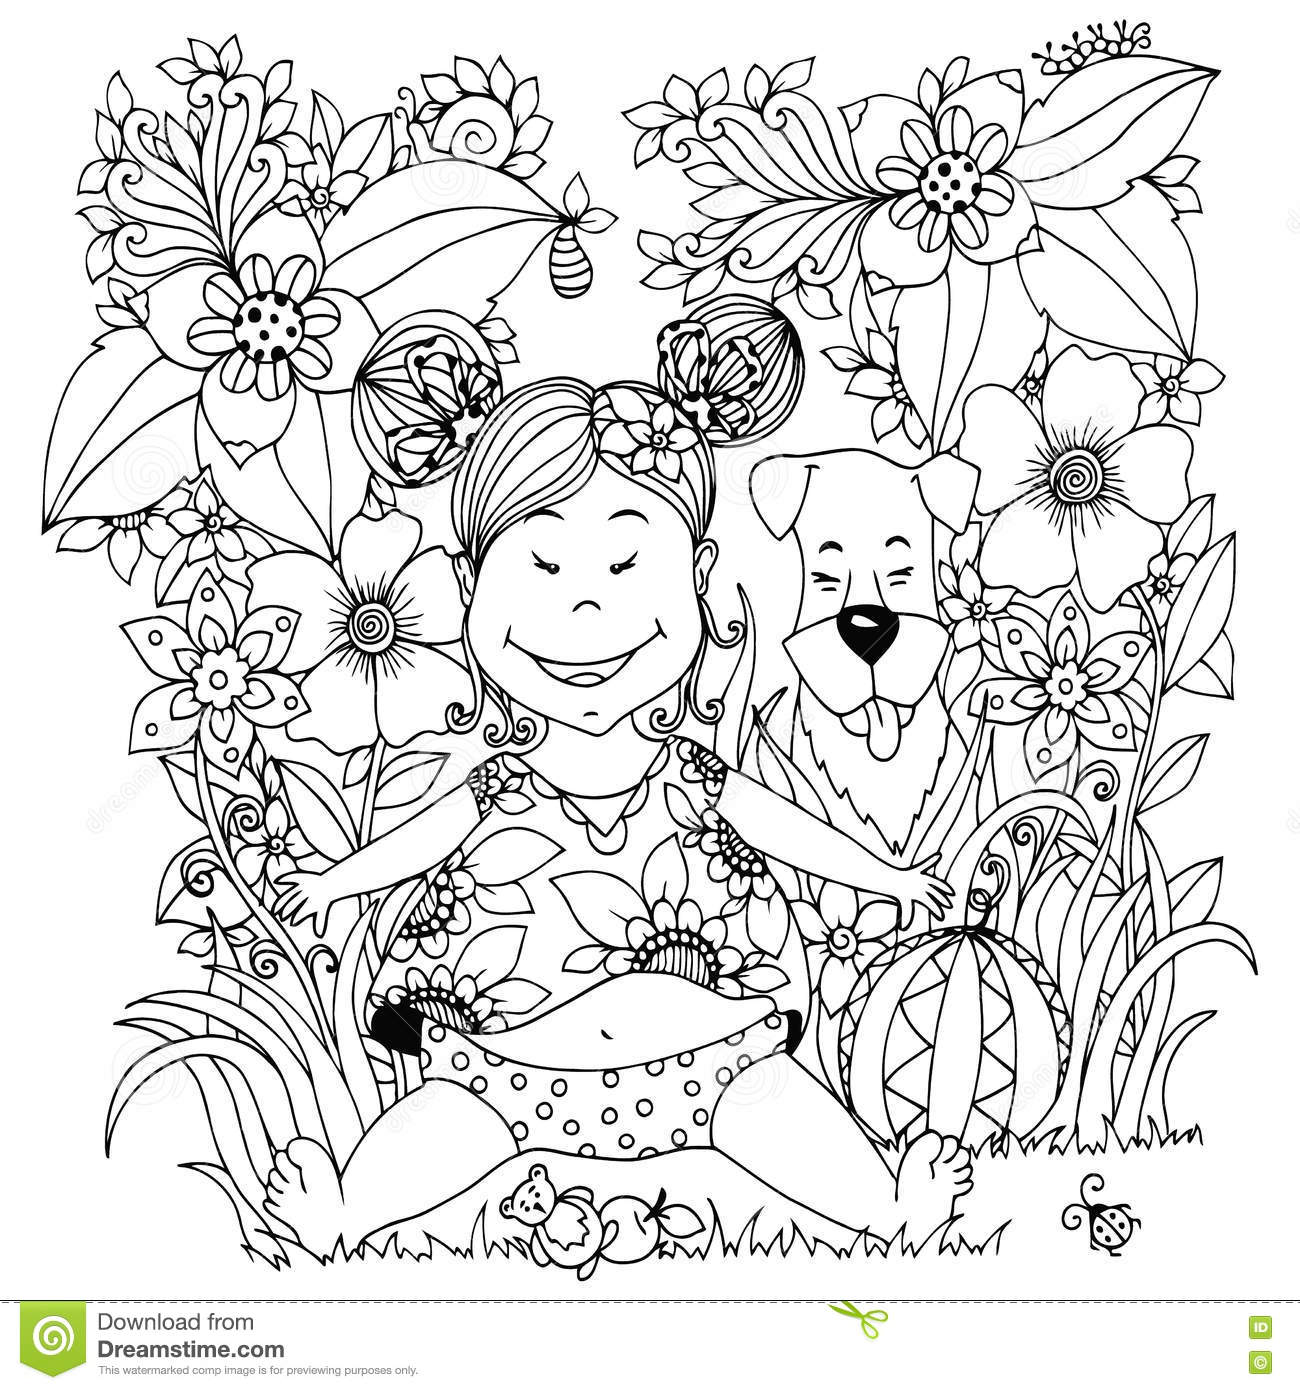 coloring page outline of dog with ball stock vector image 73522464